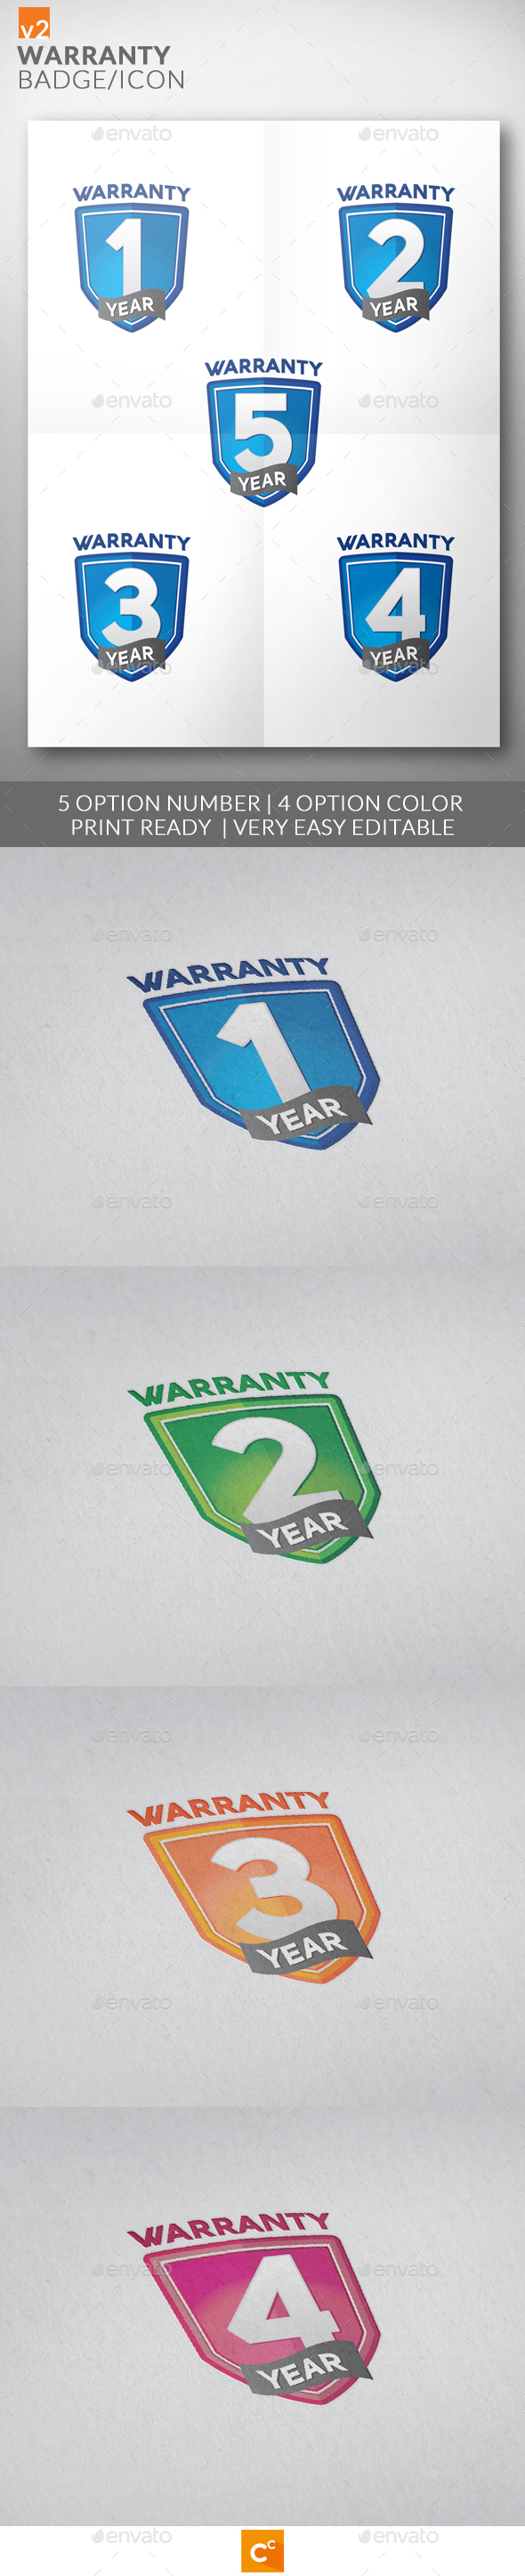 Premium Warranty Badge/Icon v2 - Badges & Stickers Web Elements